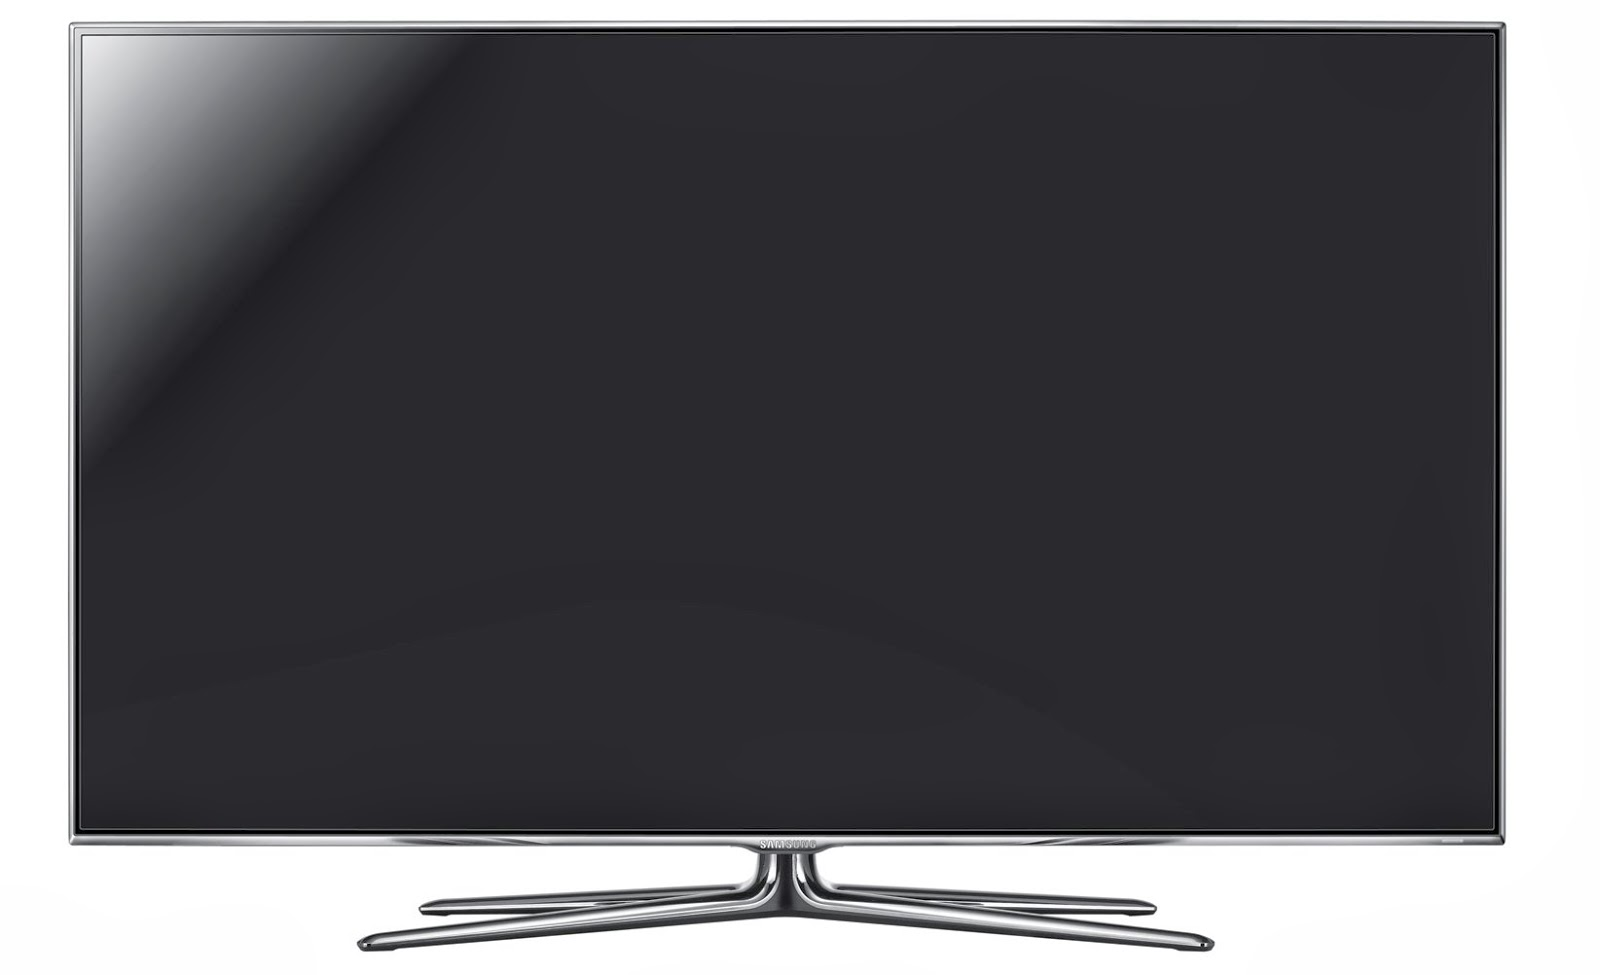 Lcd, Tv, Television, Screen Icon Png Image #31697 - Lcd, Transparent background PNG HD thumbnail